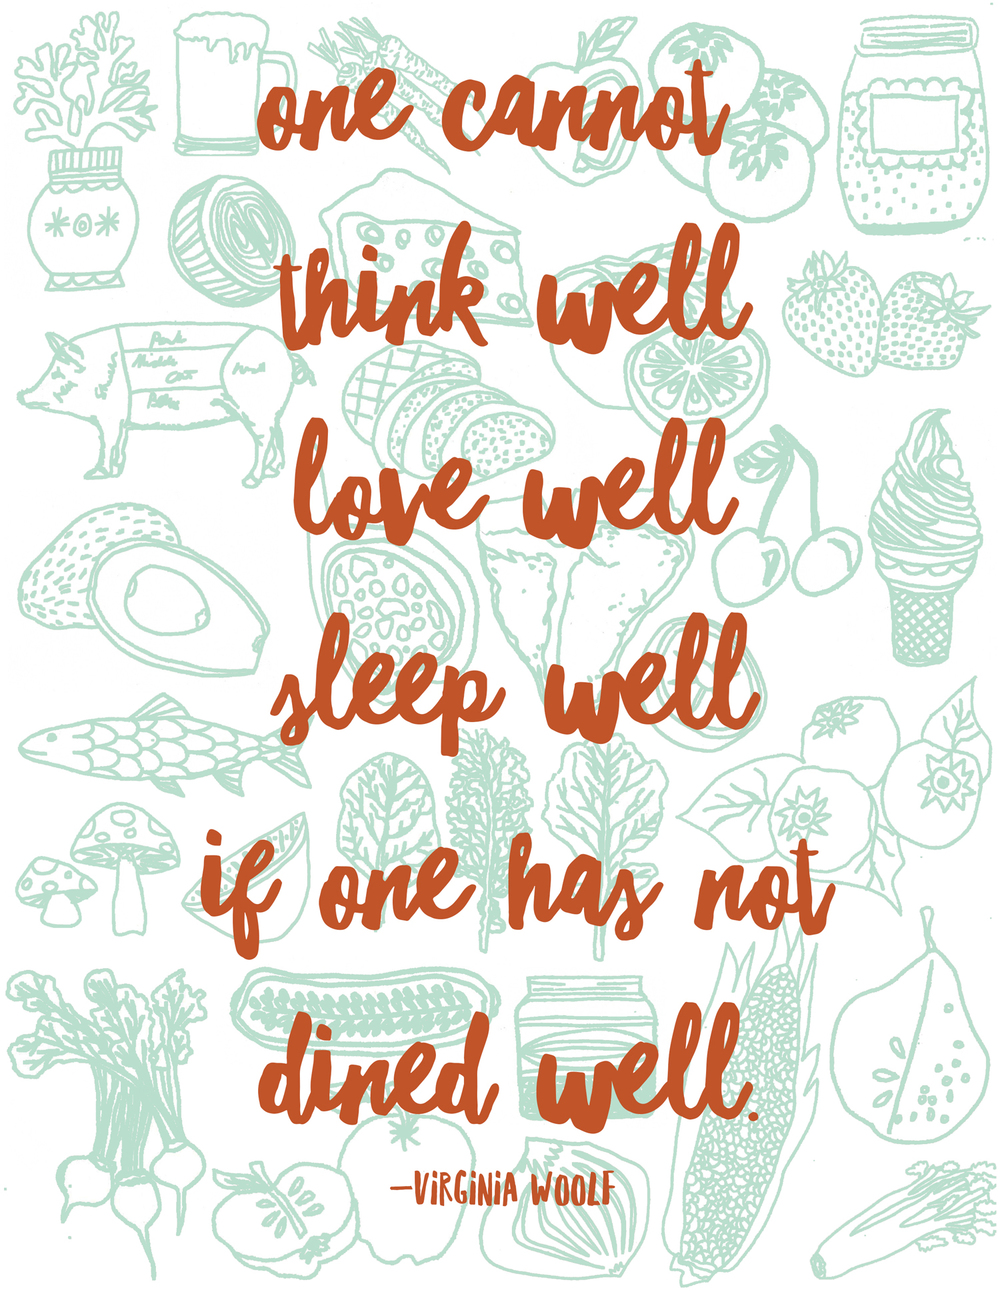 virginia woolf one cannot think well eat well drawing illustration nicole stevenson studio.jpg